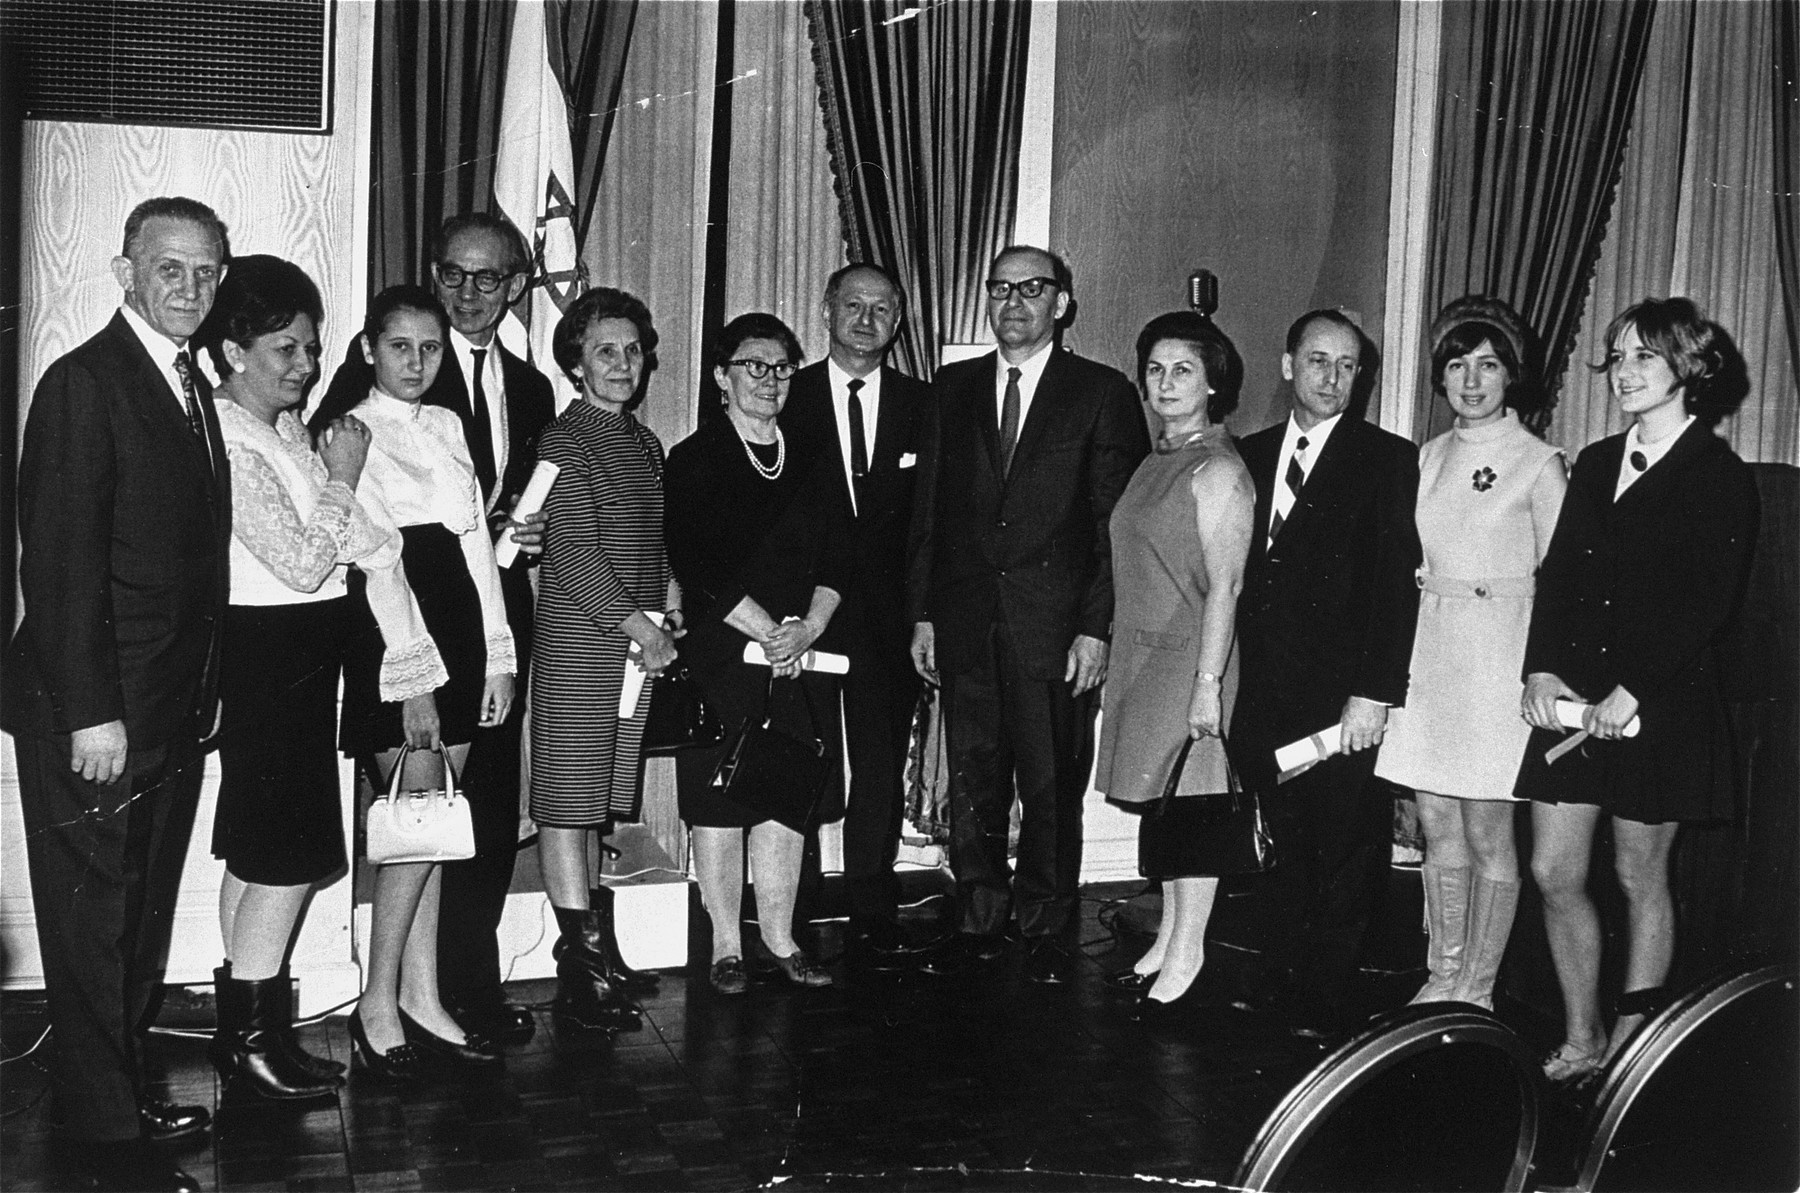 Polish rescuer Wladyslaw Wojcik is given an award at a ceremony at the American Israel Cultural Foundation.